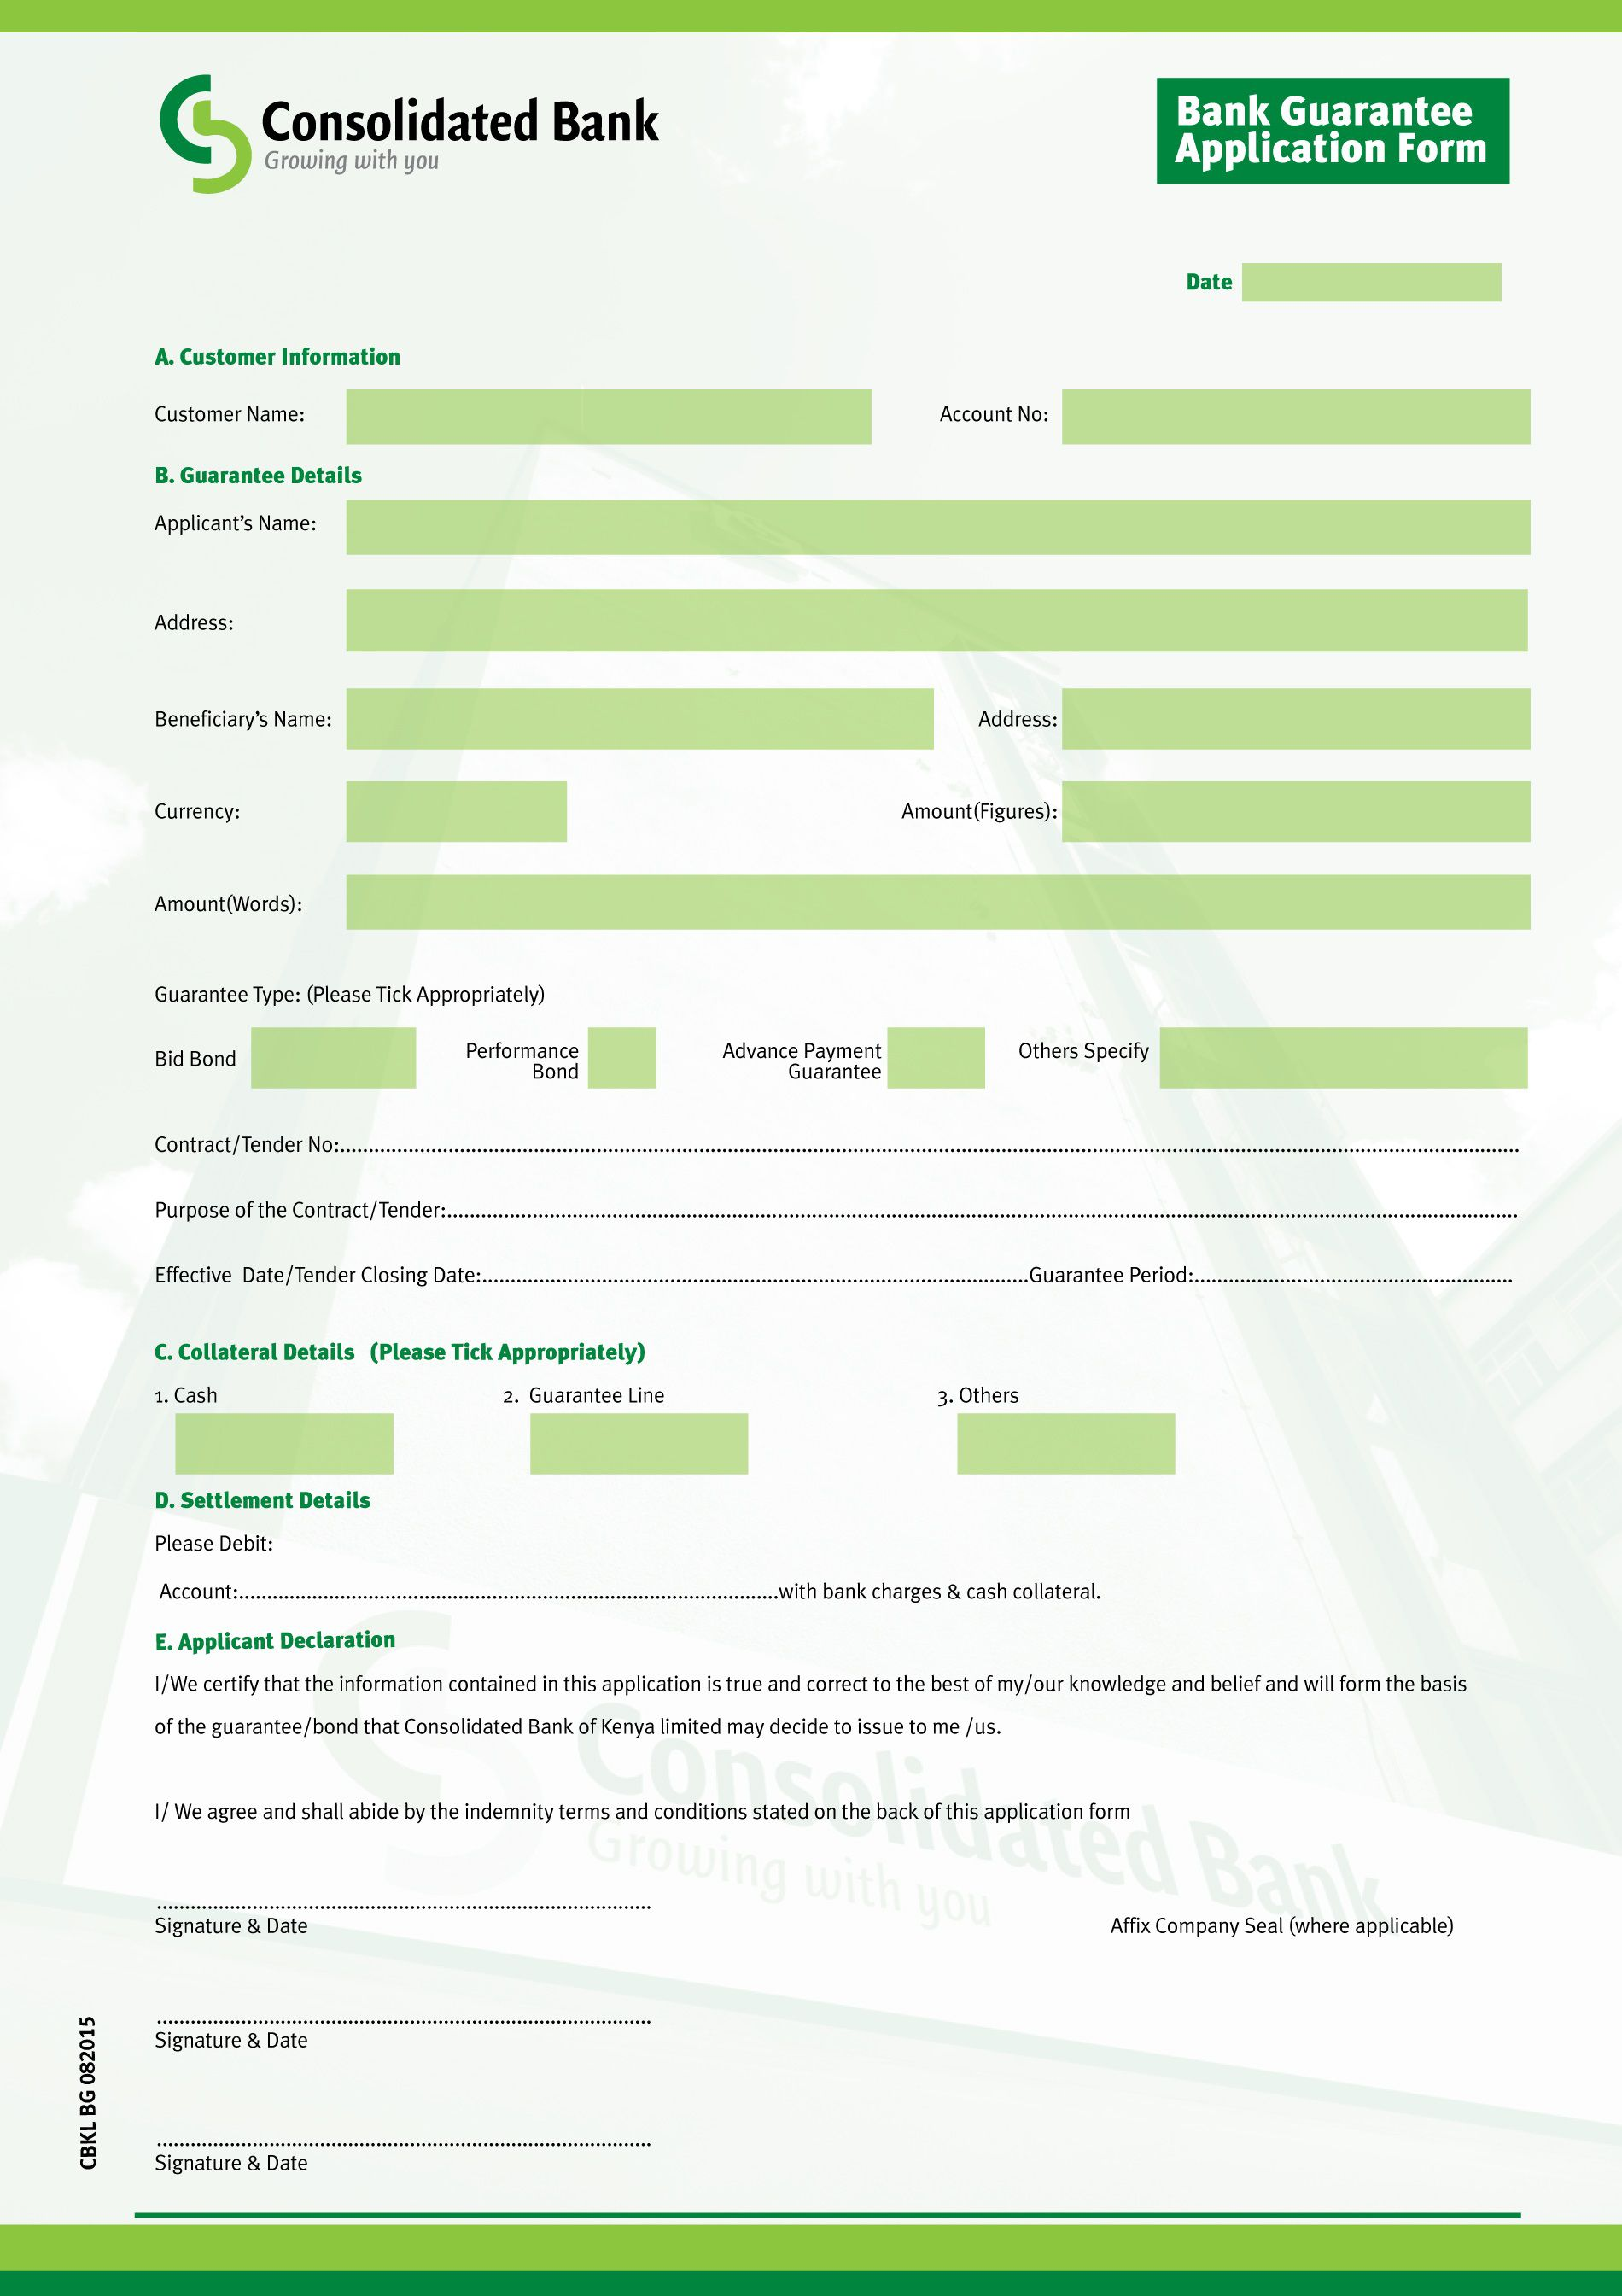 001 Magnificent New Customer Account Opening Form Template High Resolution  Word Uk ExcelFull